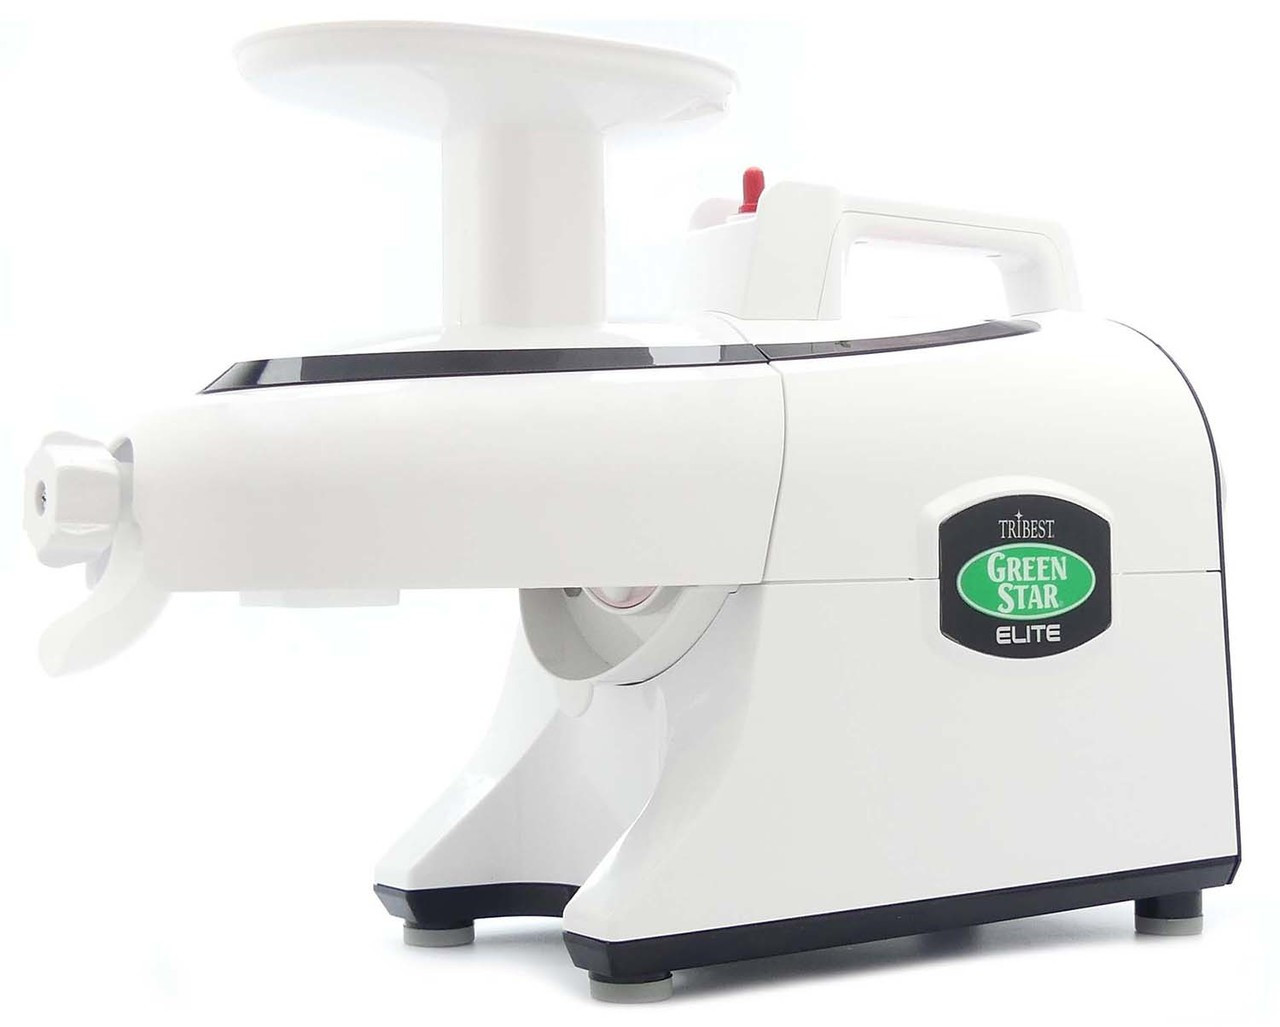 f0d2e88210a9 Green Star Elite GSE 5000 Twin Gear Juicer - Juicers.ie Ireland s No 1  Juicers website